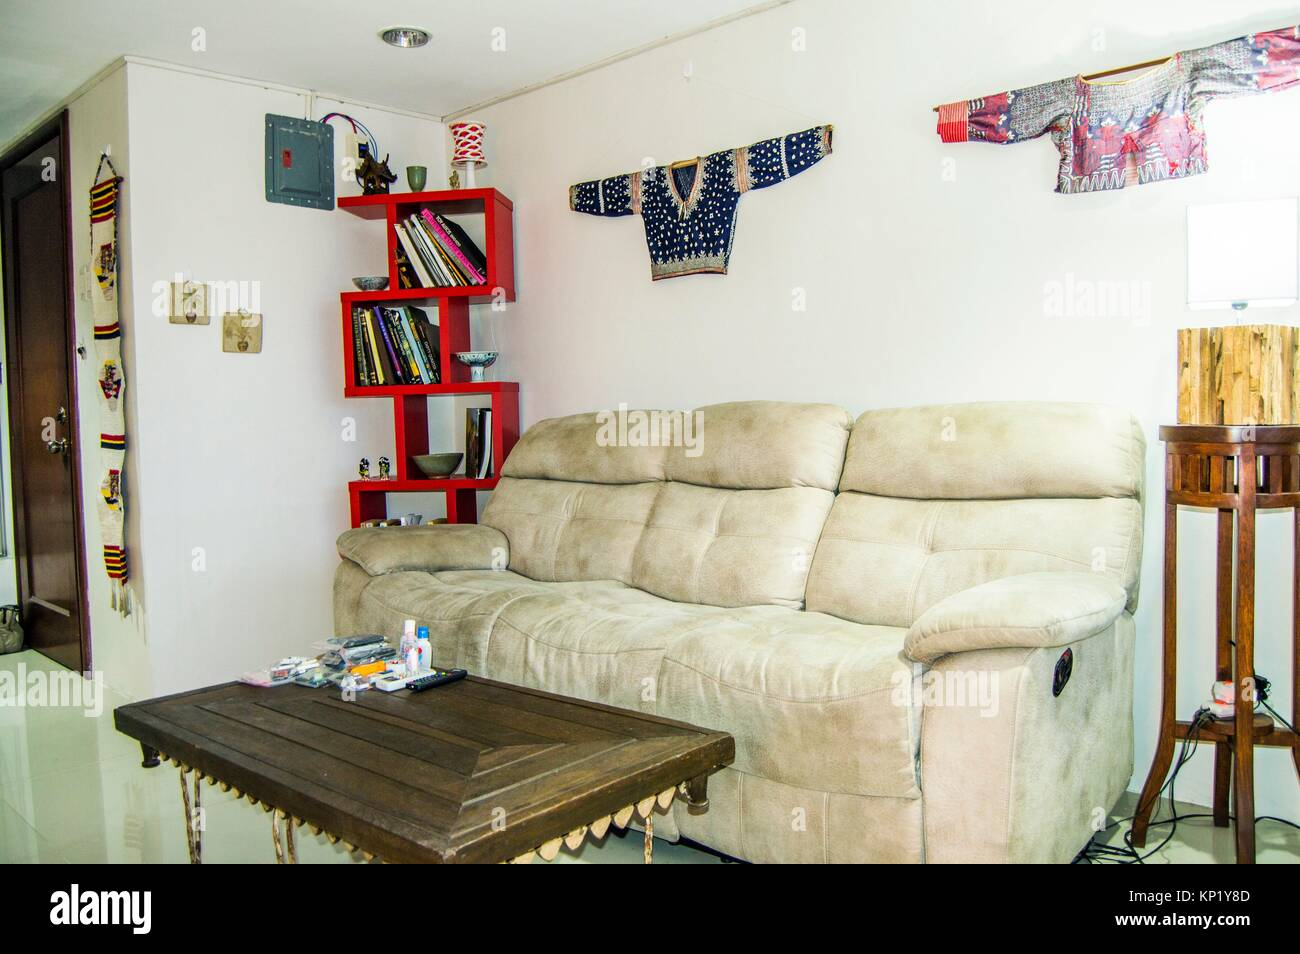 Living-room interior with antique and modern furnishings and decor, downtown Cebu, Philippines - Stock Image